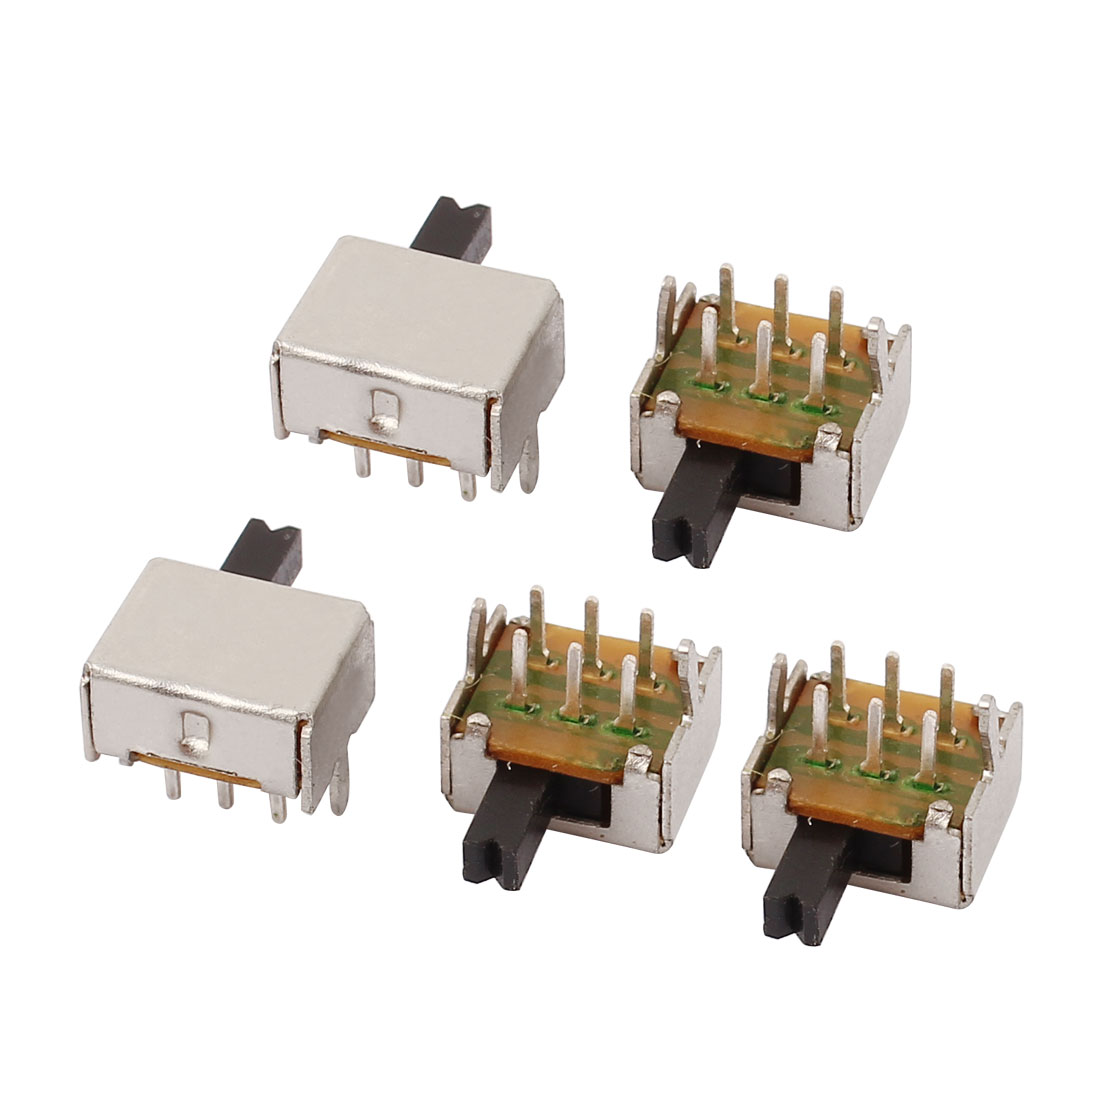 5 Pcs 2 Position Right Angle 6P DPDT Micro Slide Switch Latching Toggle Switch